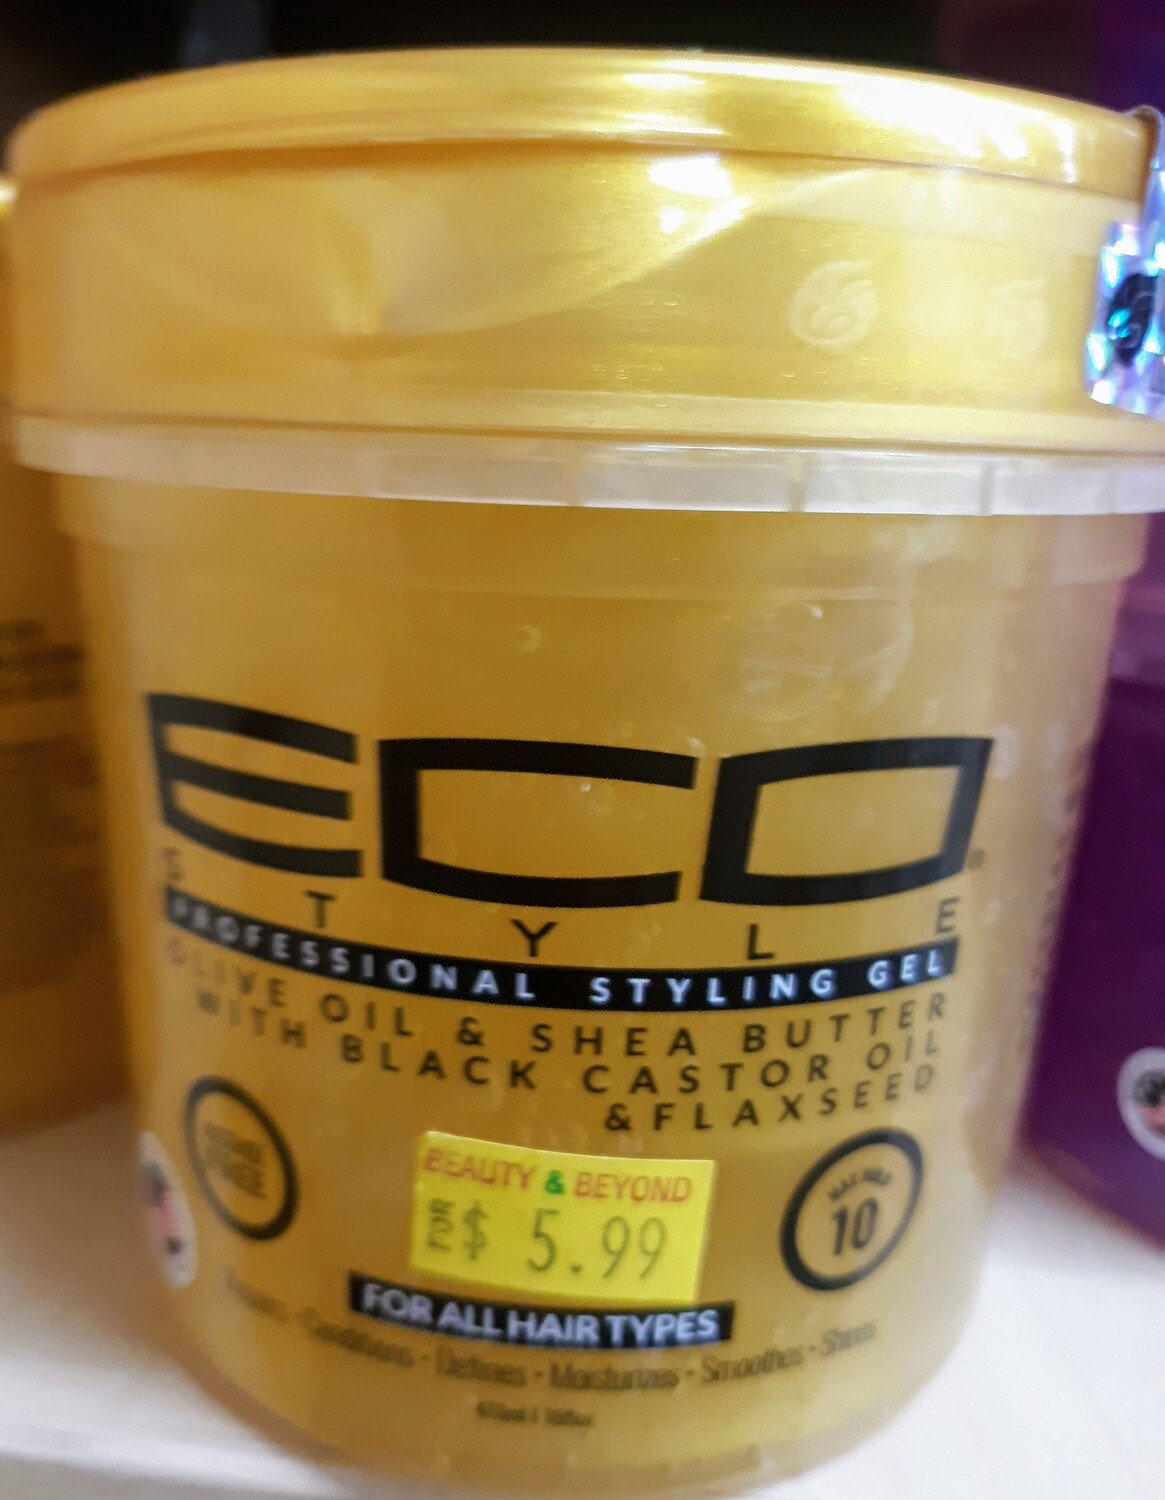 ECO Gel Gold (Shea Butter, Black Seed Oil, Flaxseed)